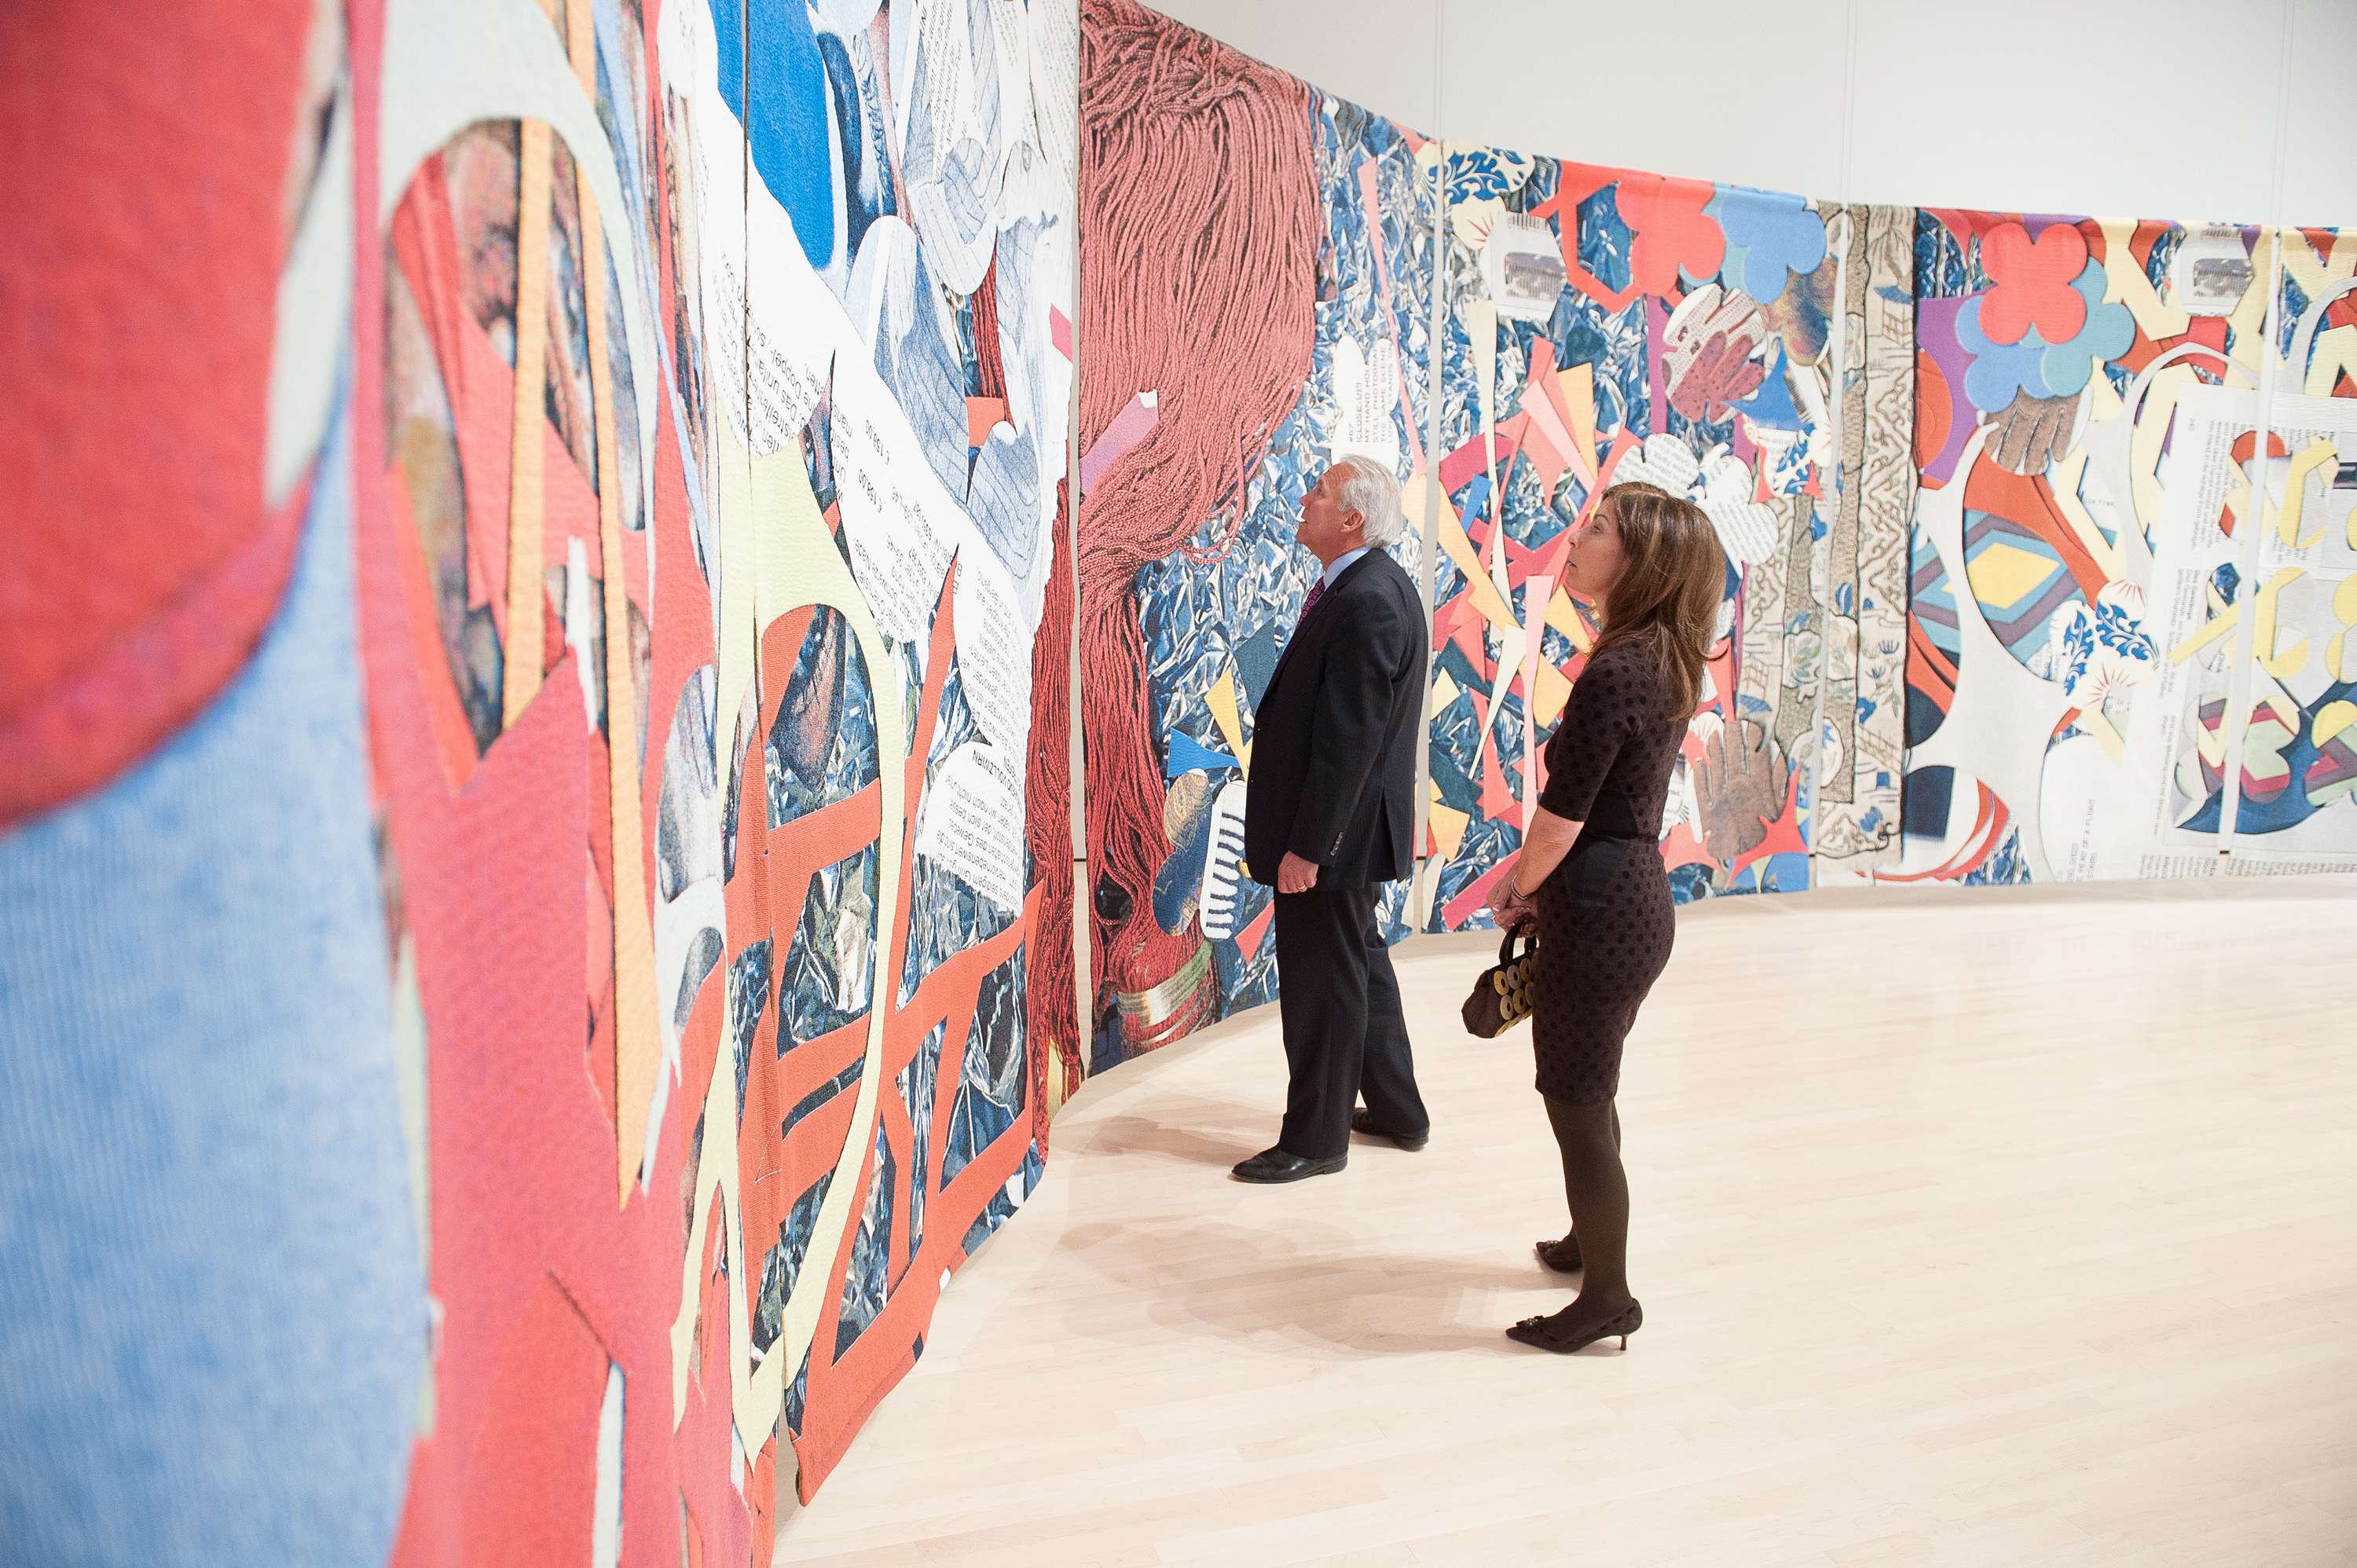 <i>Pattern: Follow the Rules</i>, installation view at the Eli and Edythe Broad Art Museum at Michigan State University, 2013. Photo: Trumpie Photography